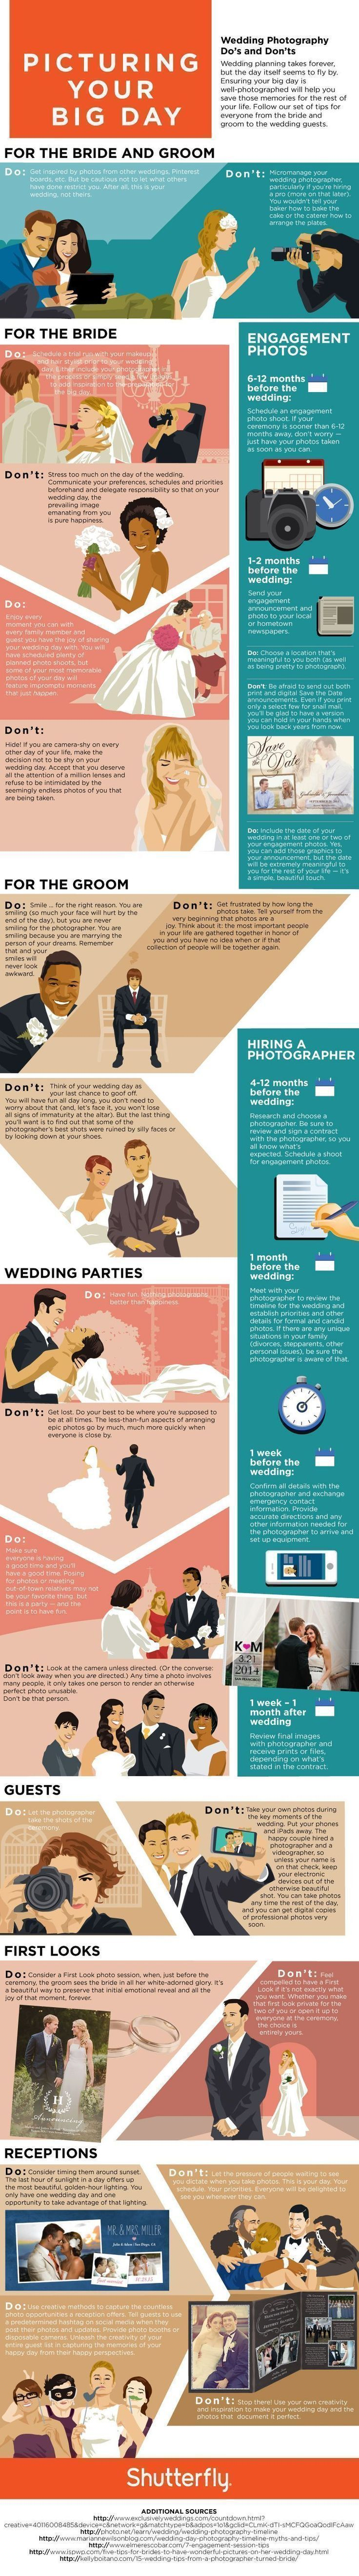 Plan Out a Picture Perfect Wedding Day With These Handy Photography Tips (INFOGRAPHIC) #weddingplanninginfographic #weddinginfographic